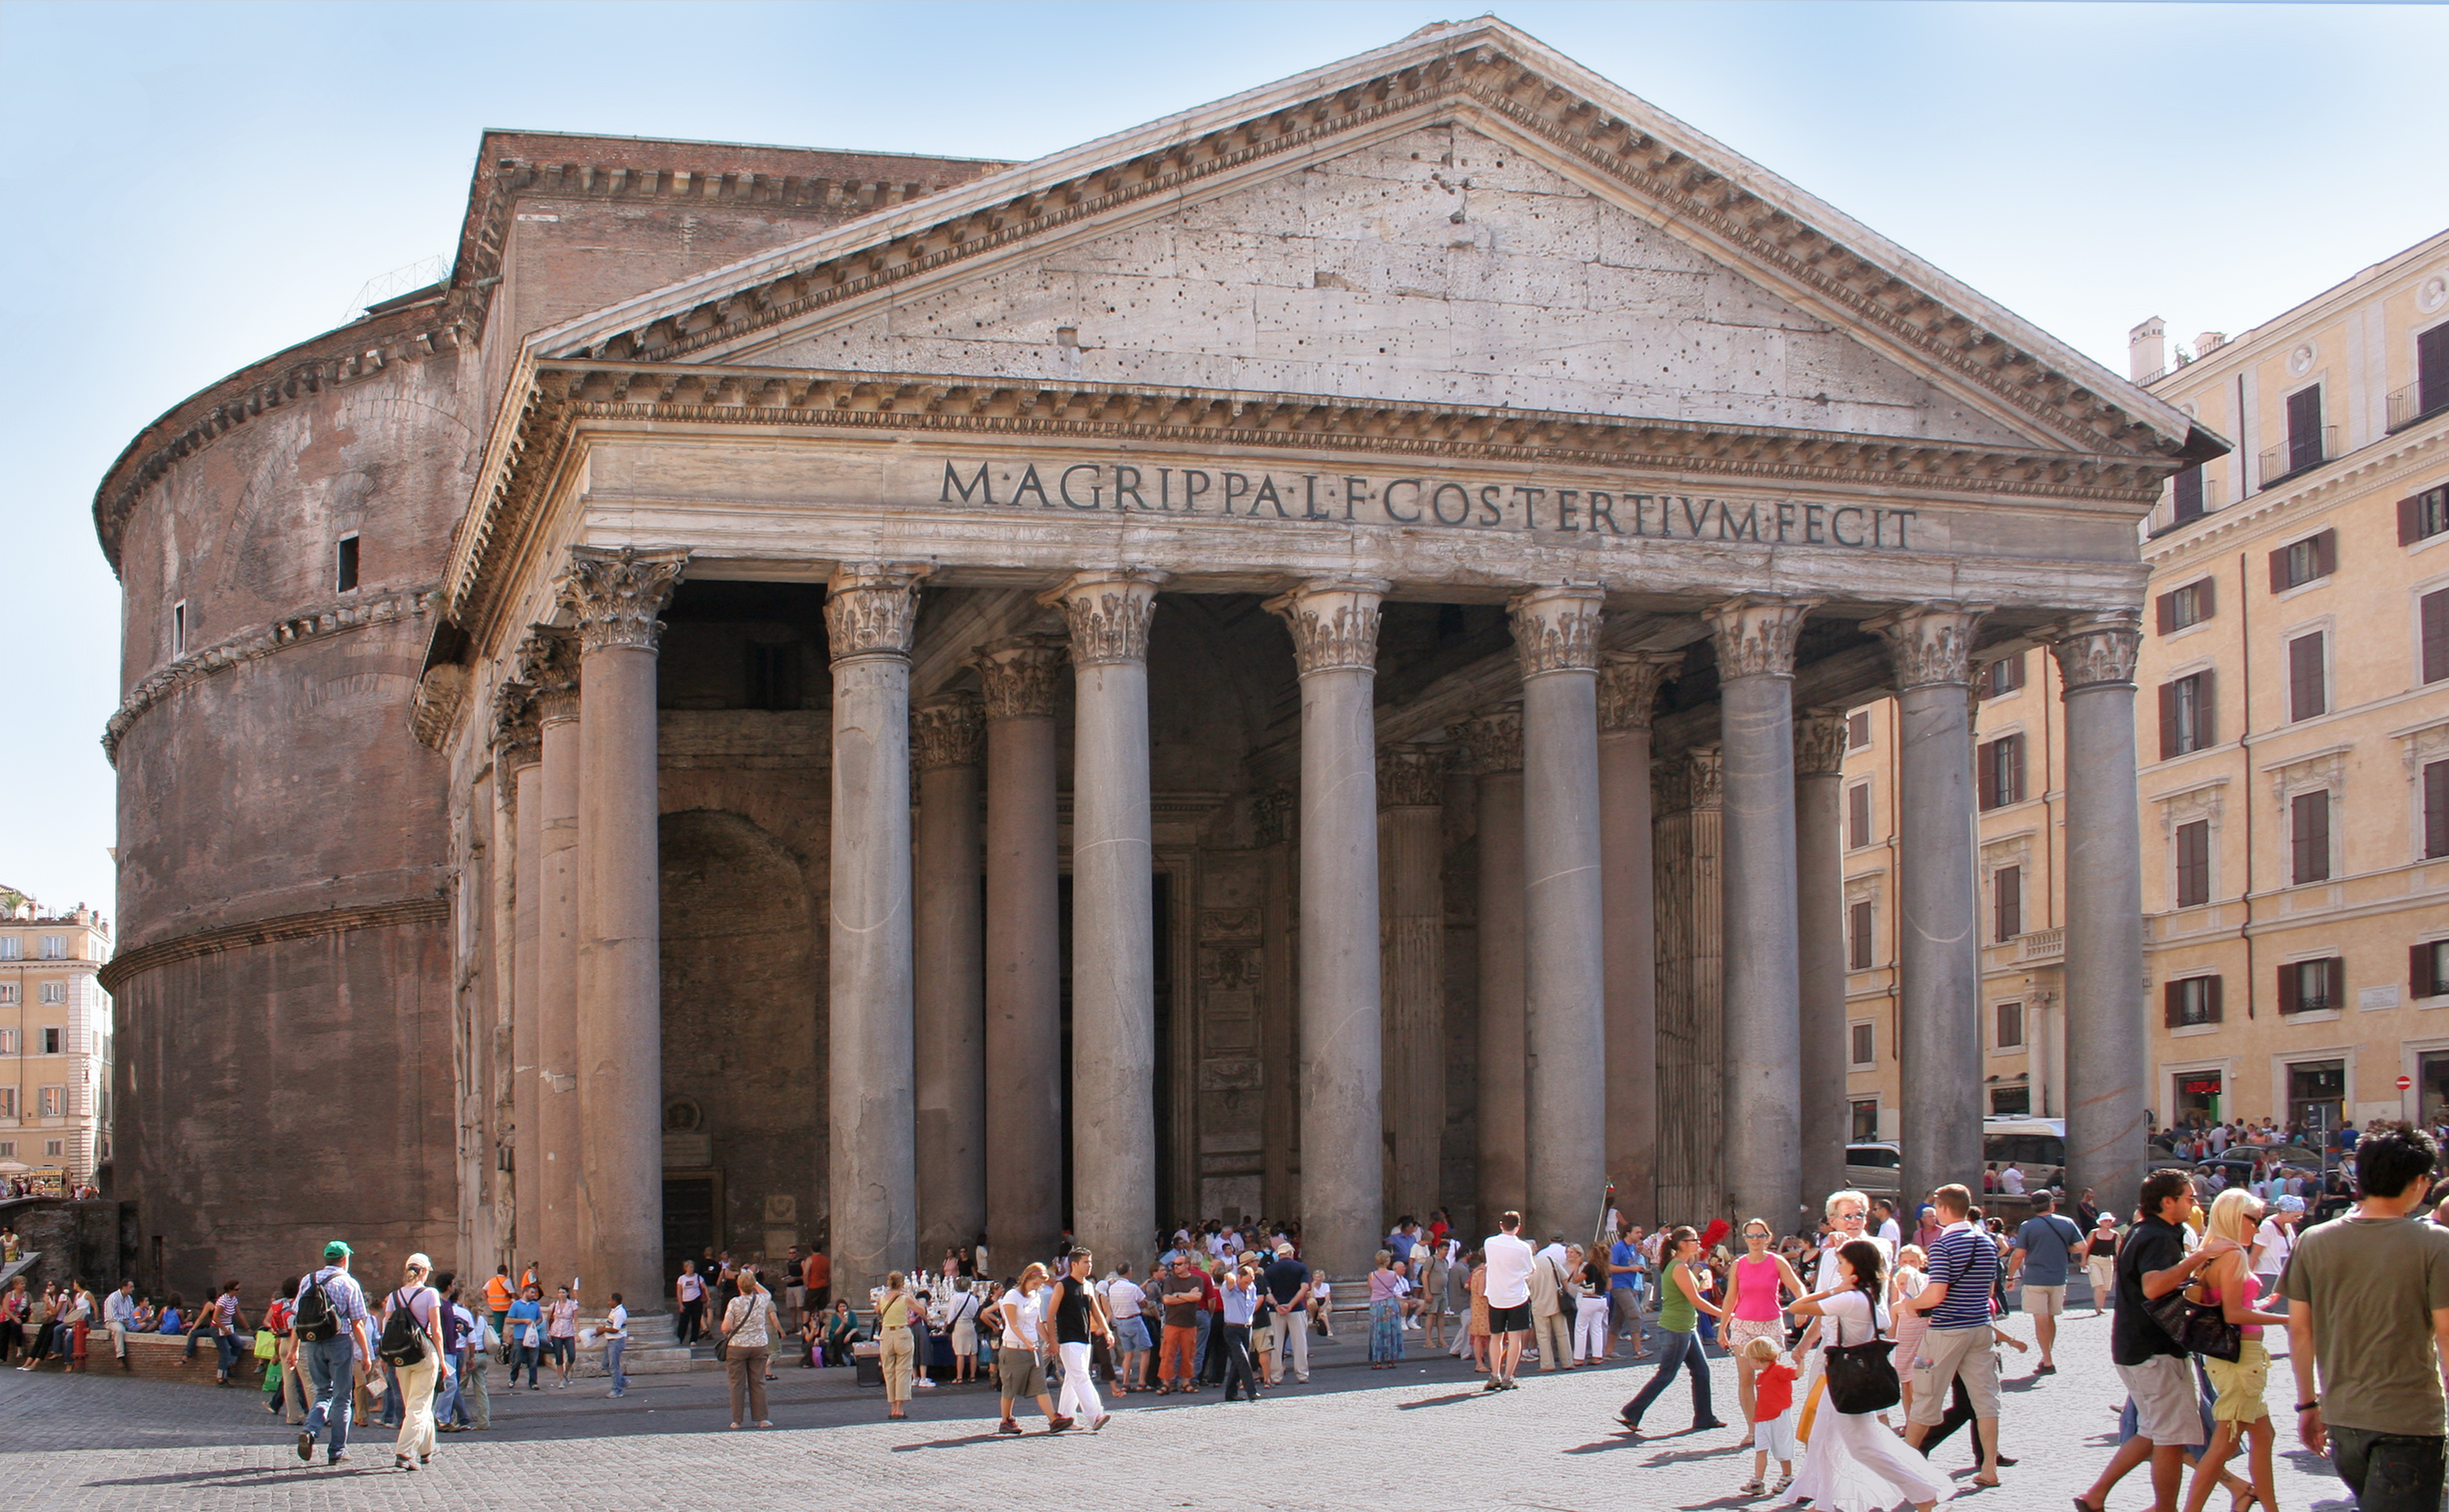 http://upload.wikimedia.org/wikipedia/commons/0/06/Rome_Pantheon_front.jpg